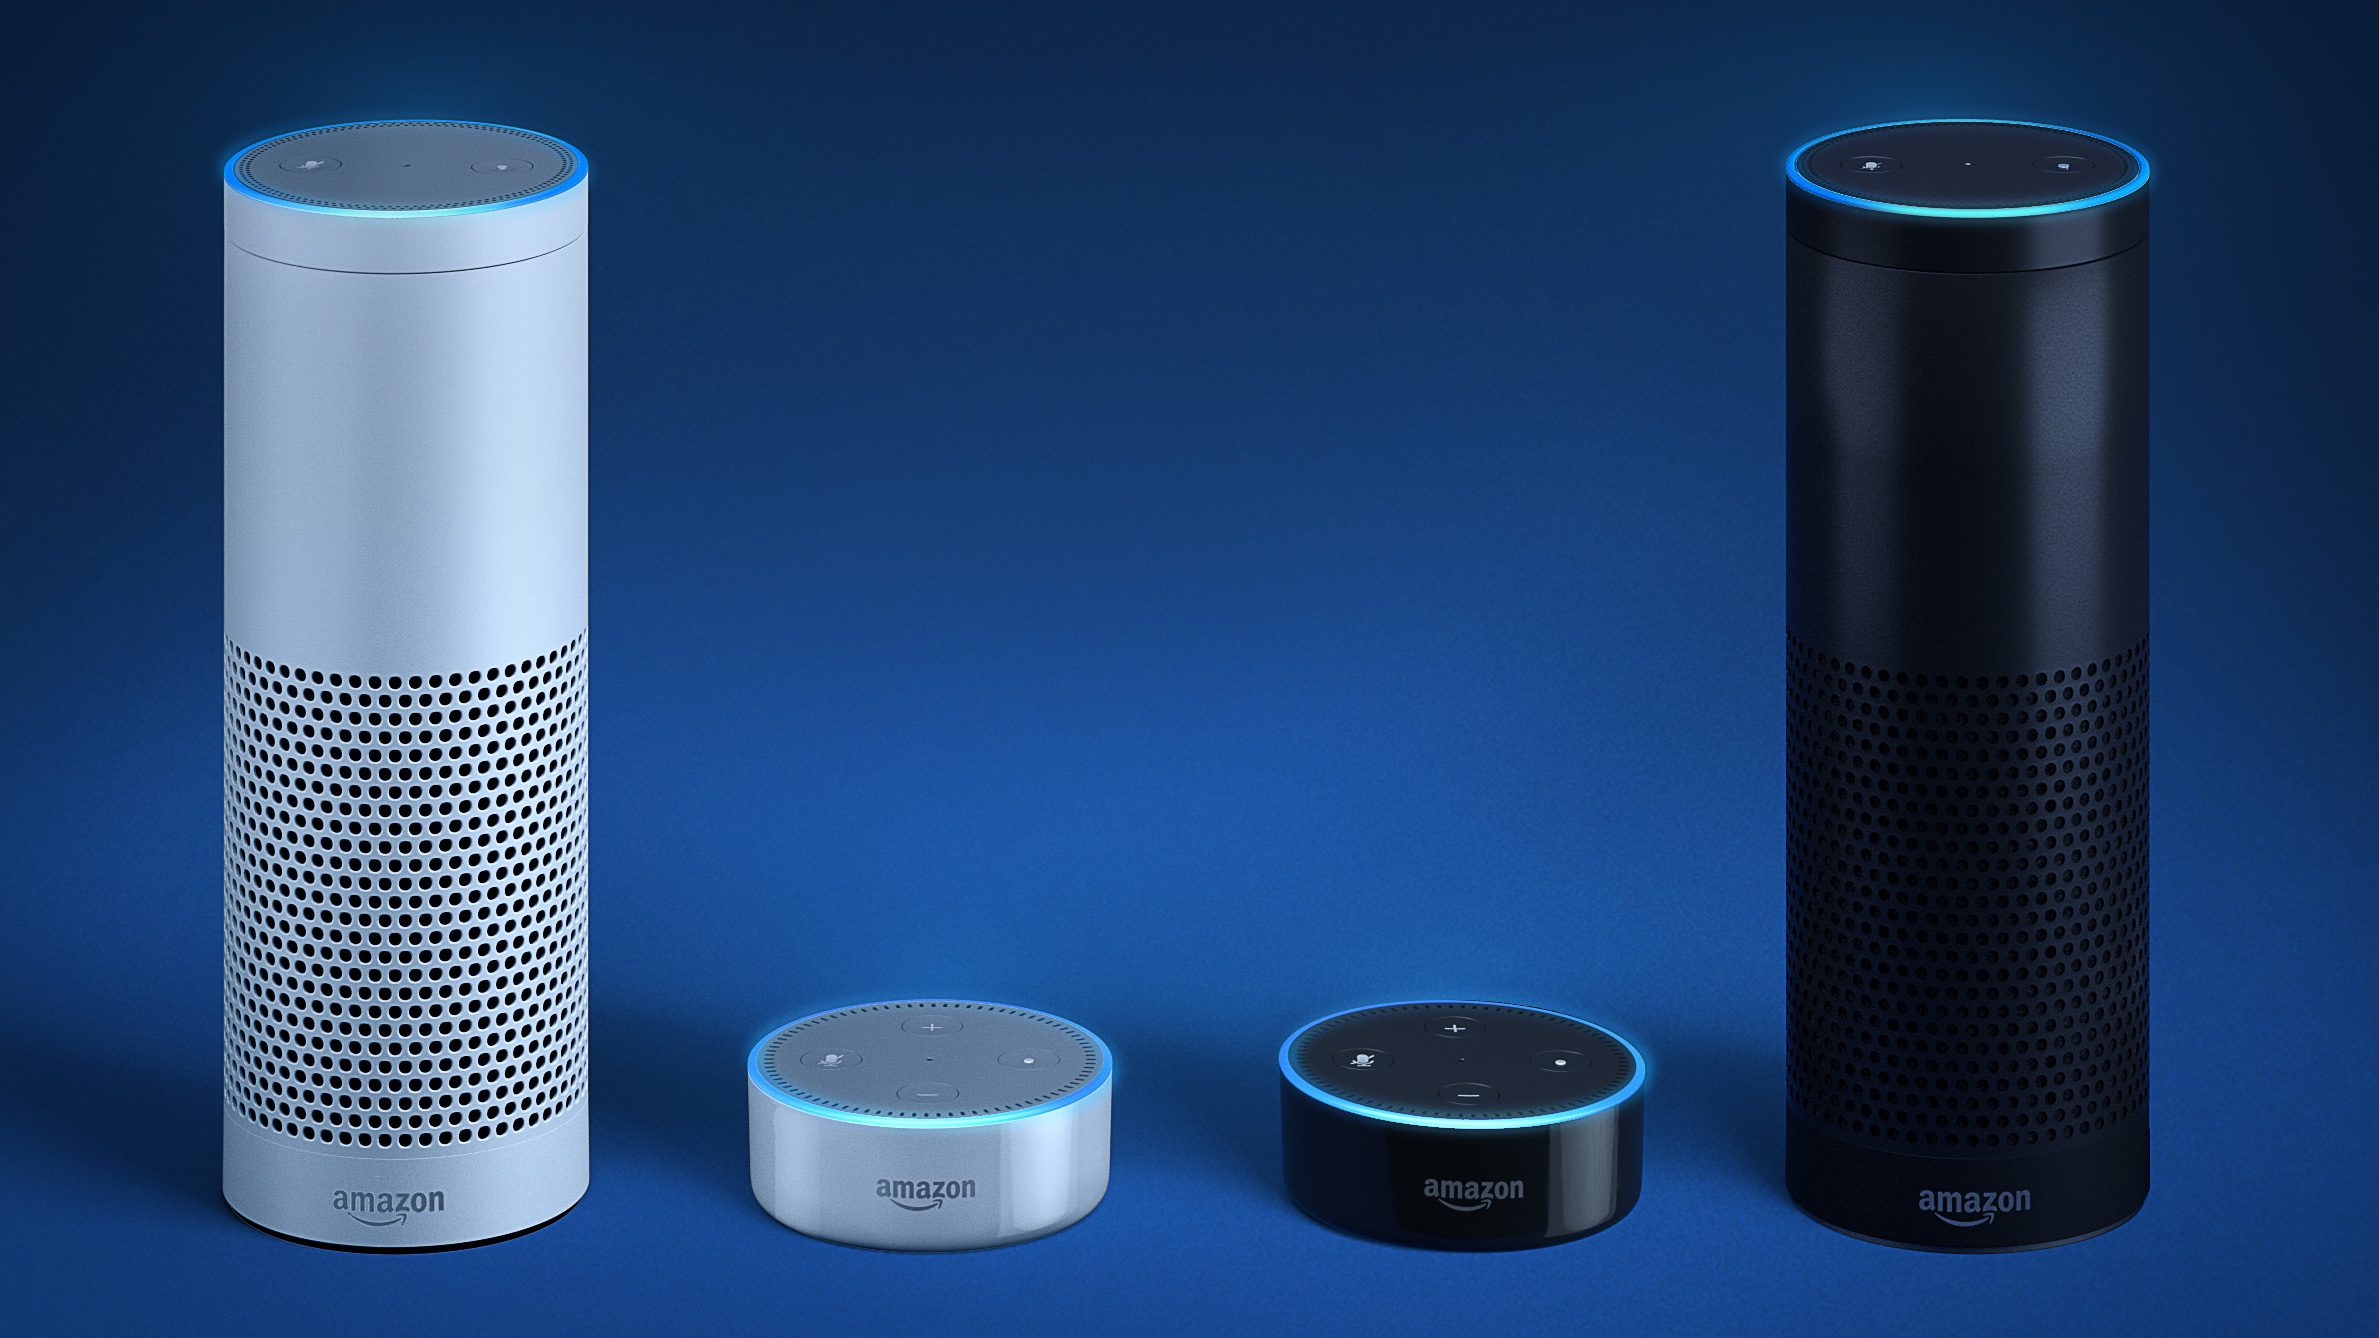 amazon-echo-and-echo-dot